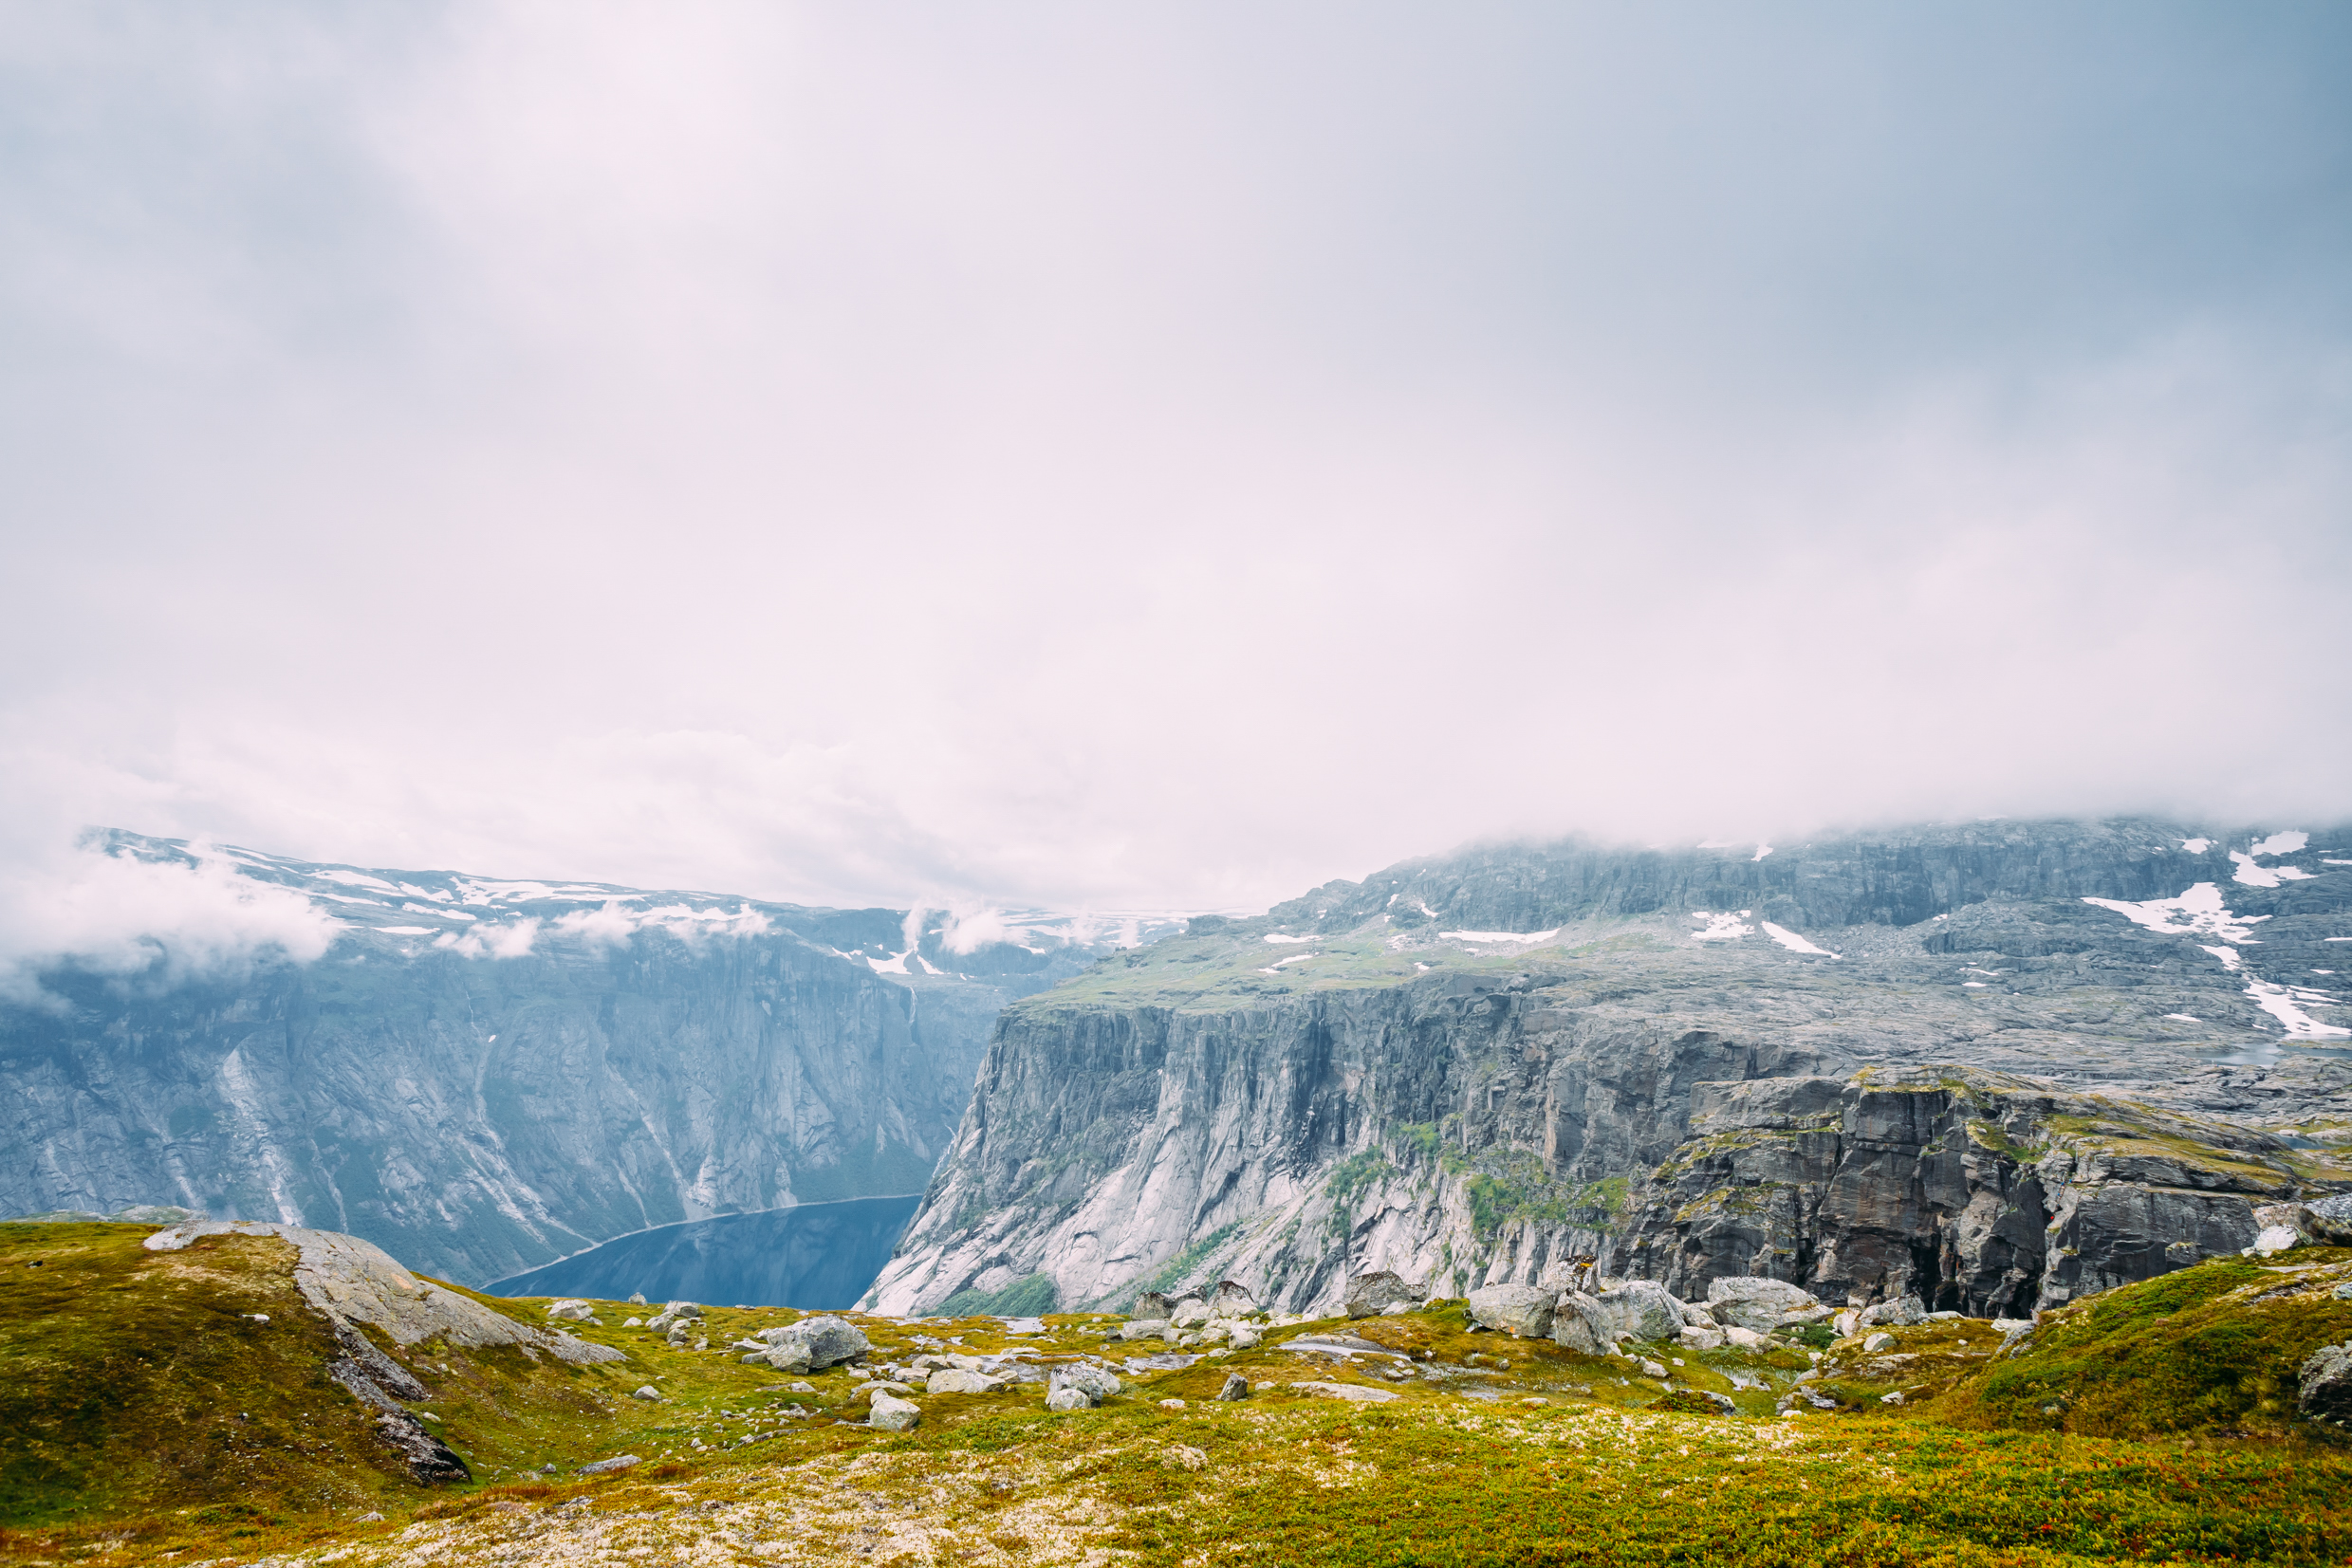 Mountains - Film Locations and Video Production Service in Norway, Oslo, Bergen